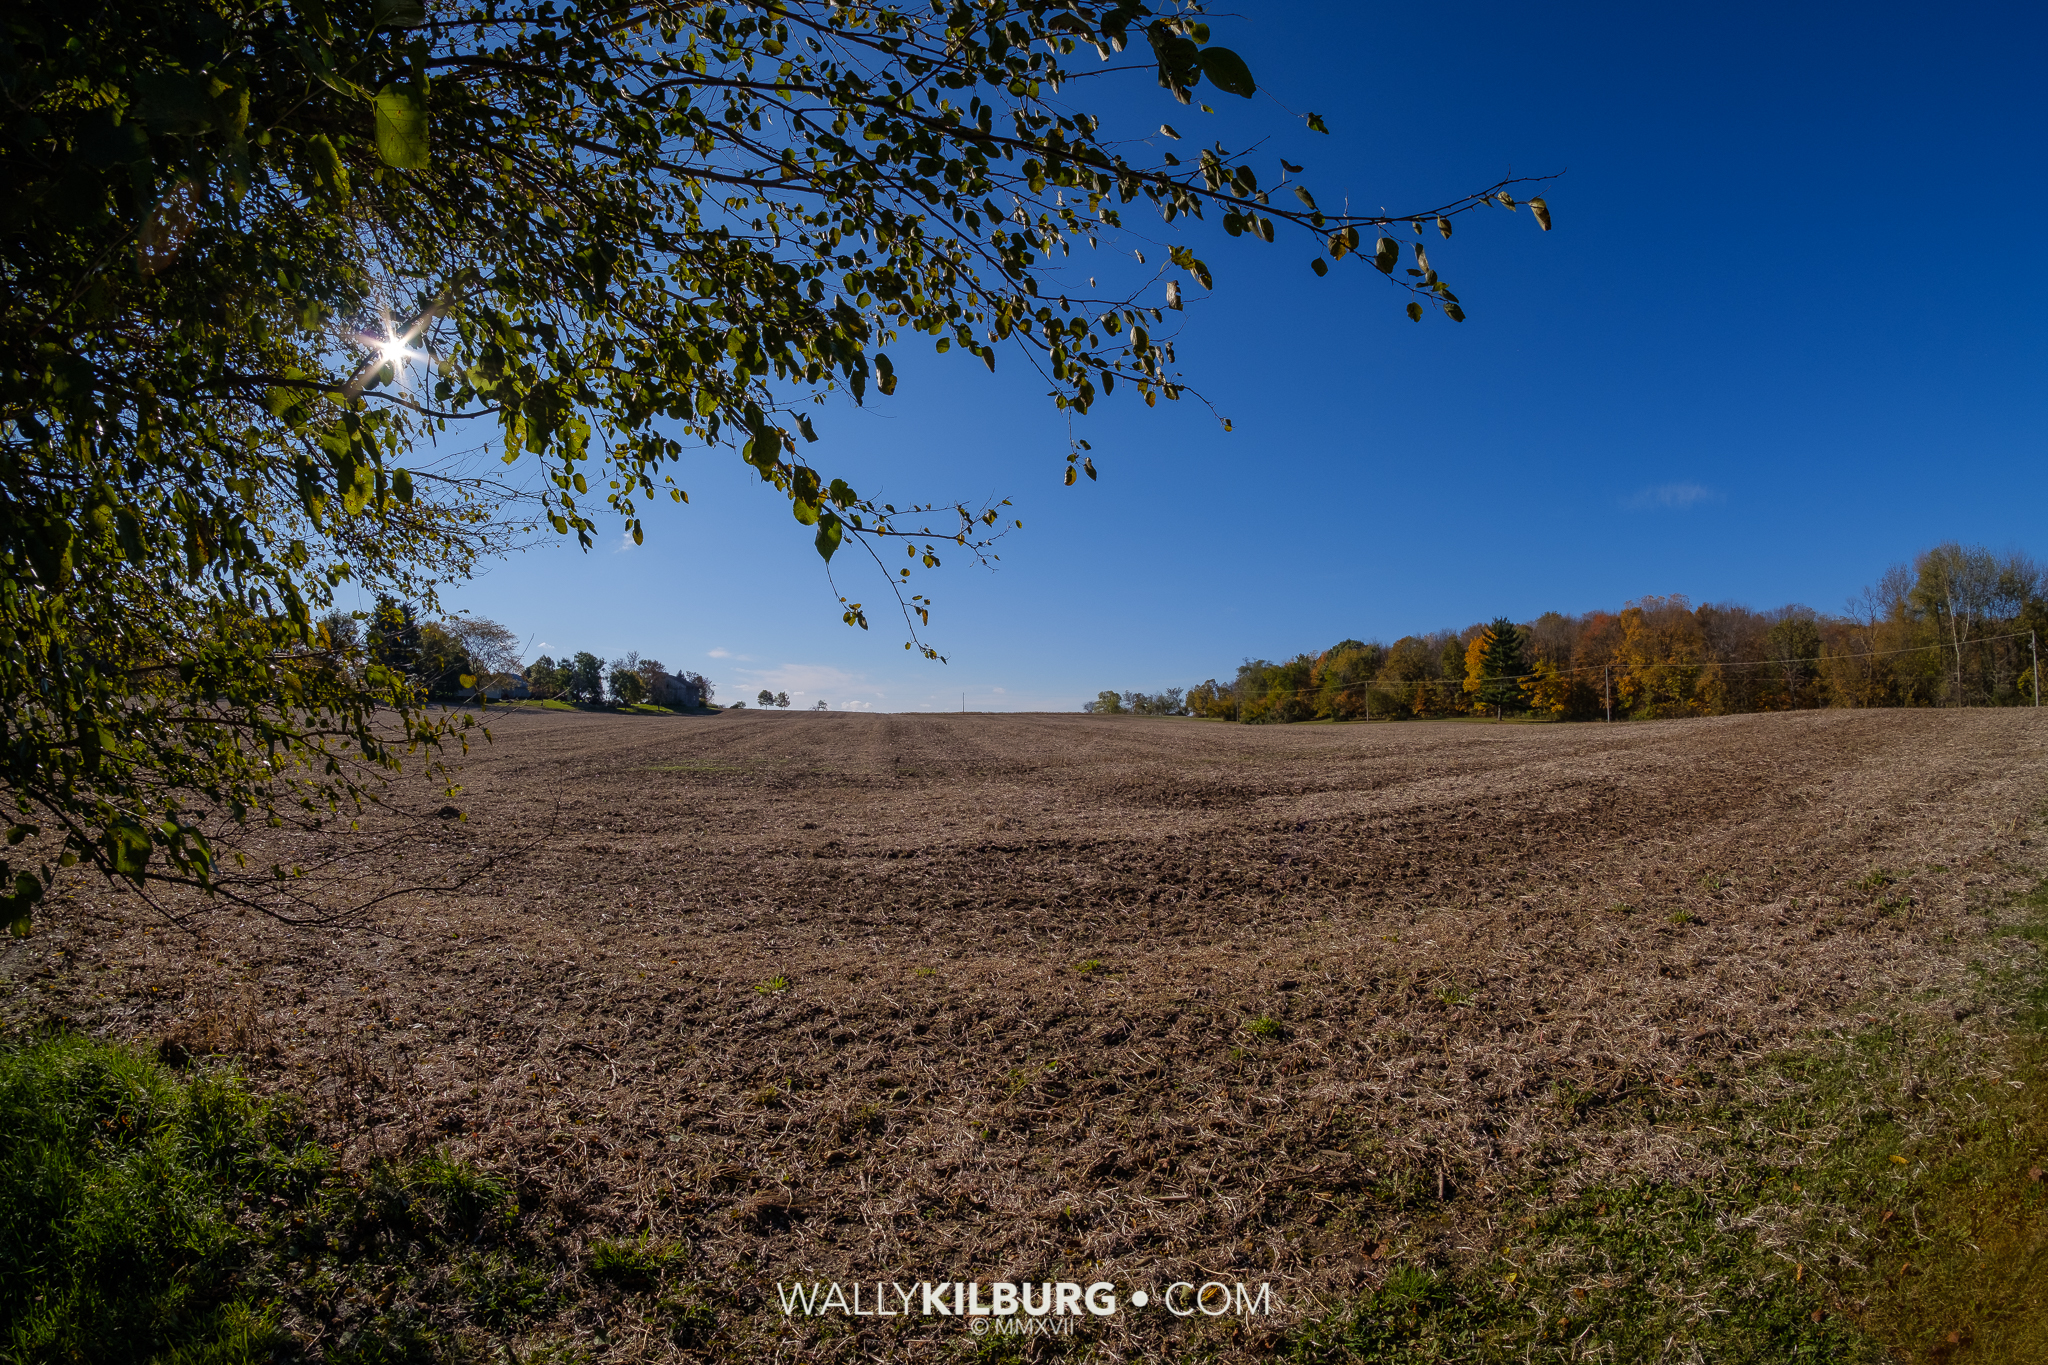 Freshly harvested soybean field next to my house